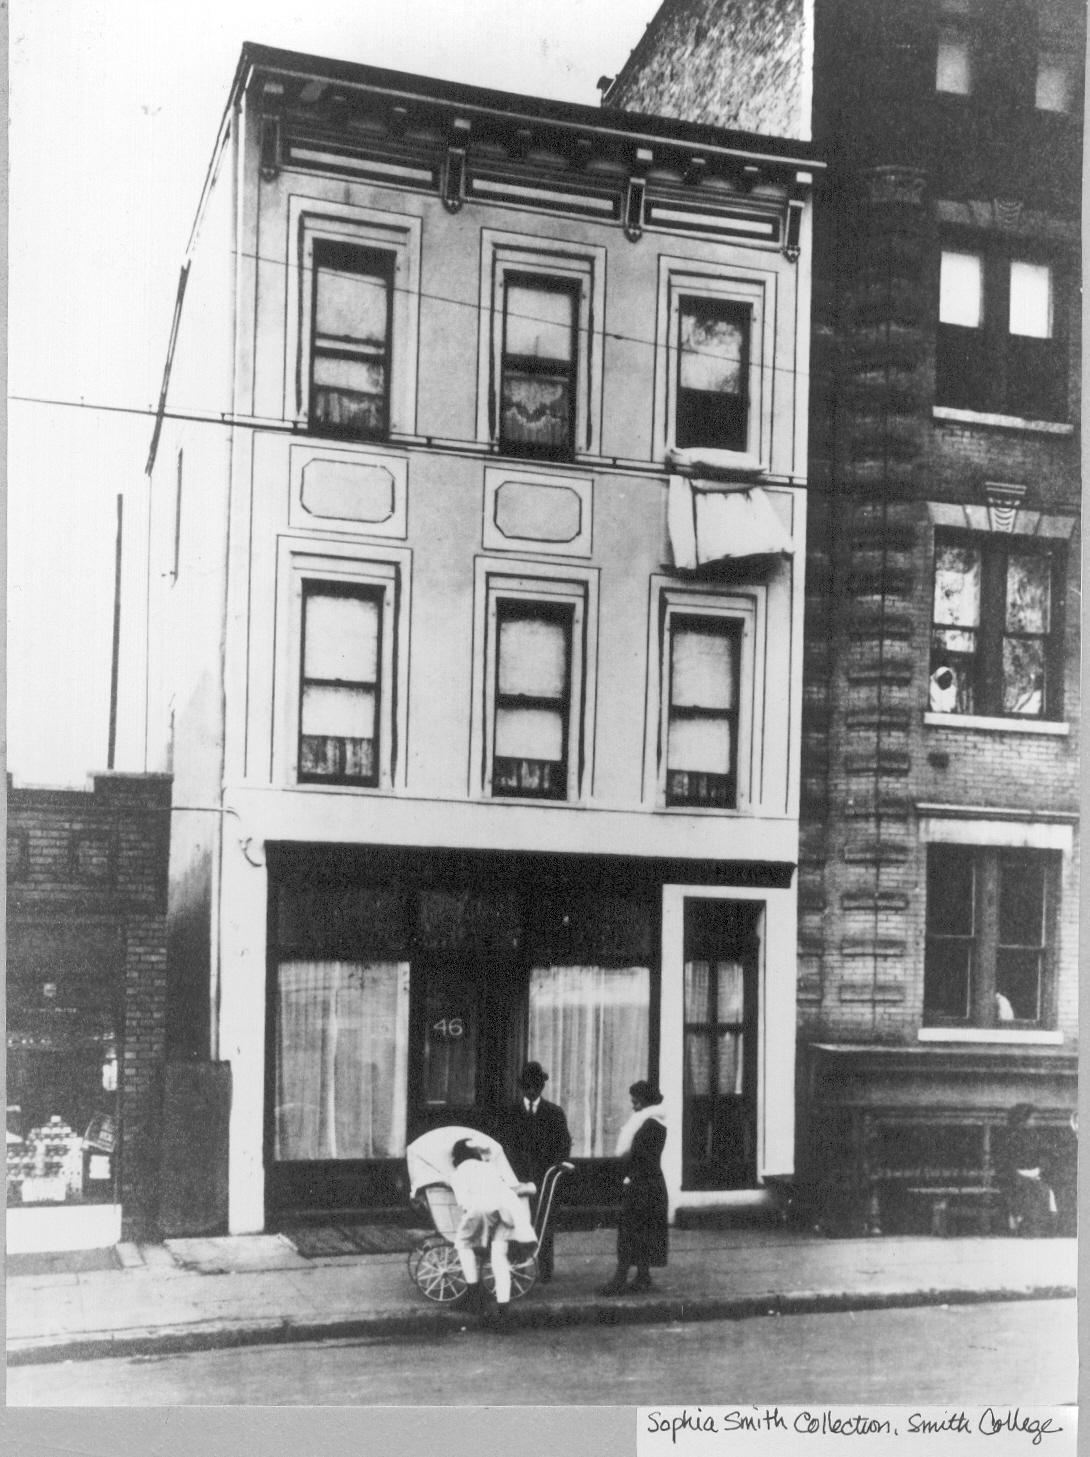 Clinic exterior at 46 Amboy Street